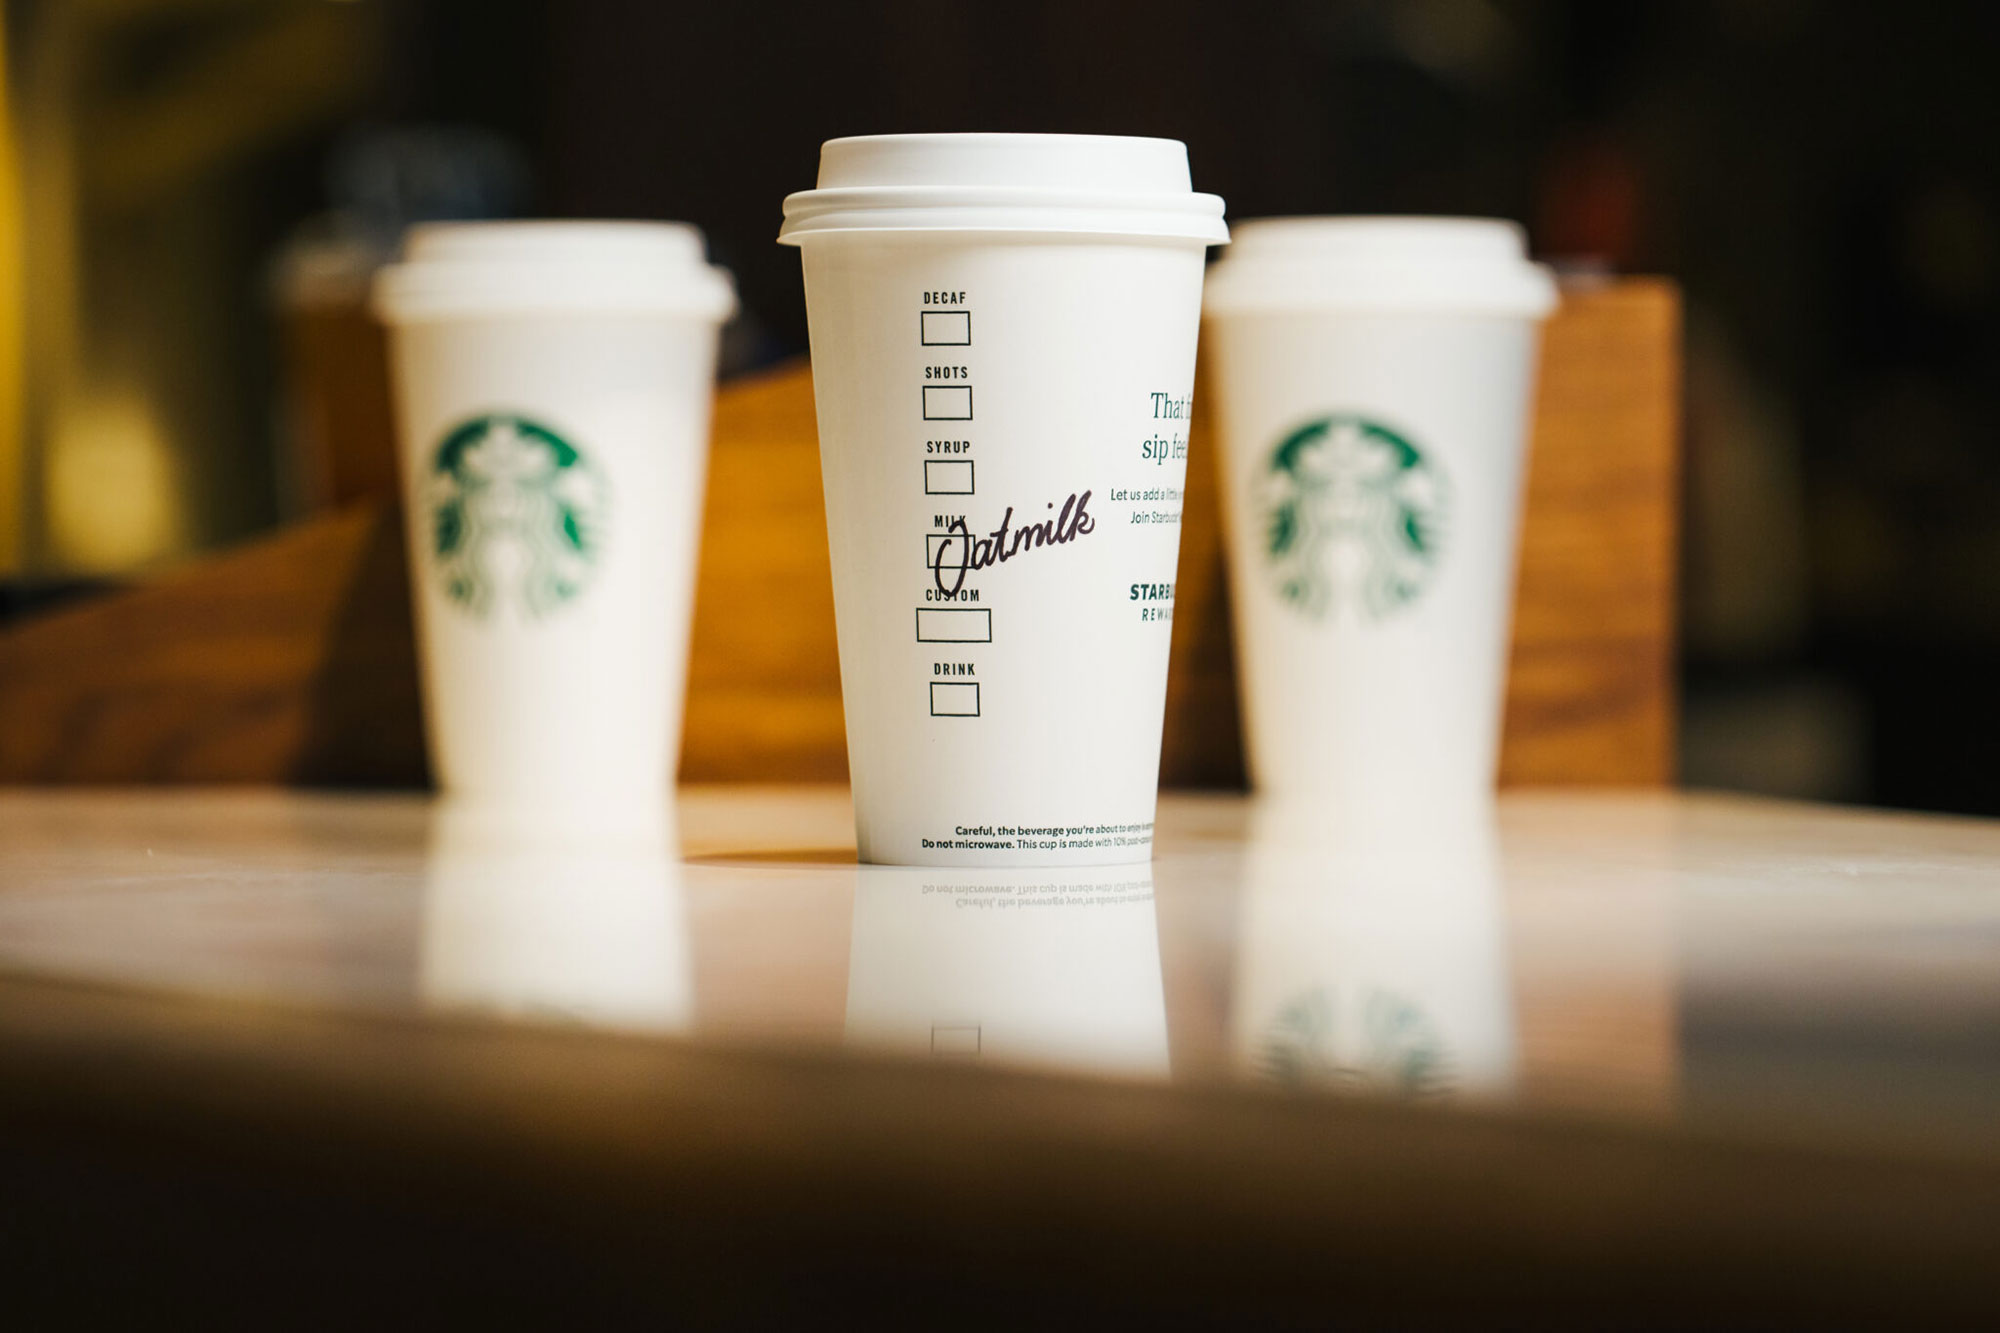 Starbucks Is Experiencing Oatmilk Shortages After Adding It to Menus Nationwide